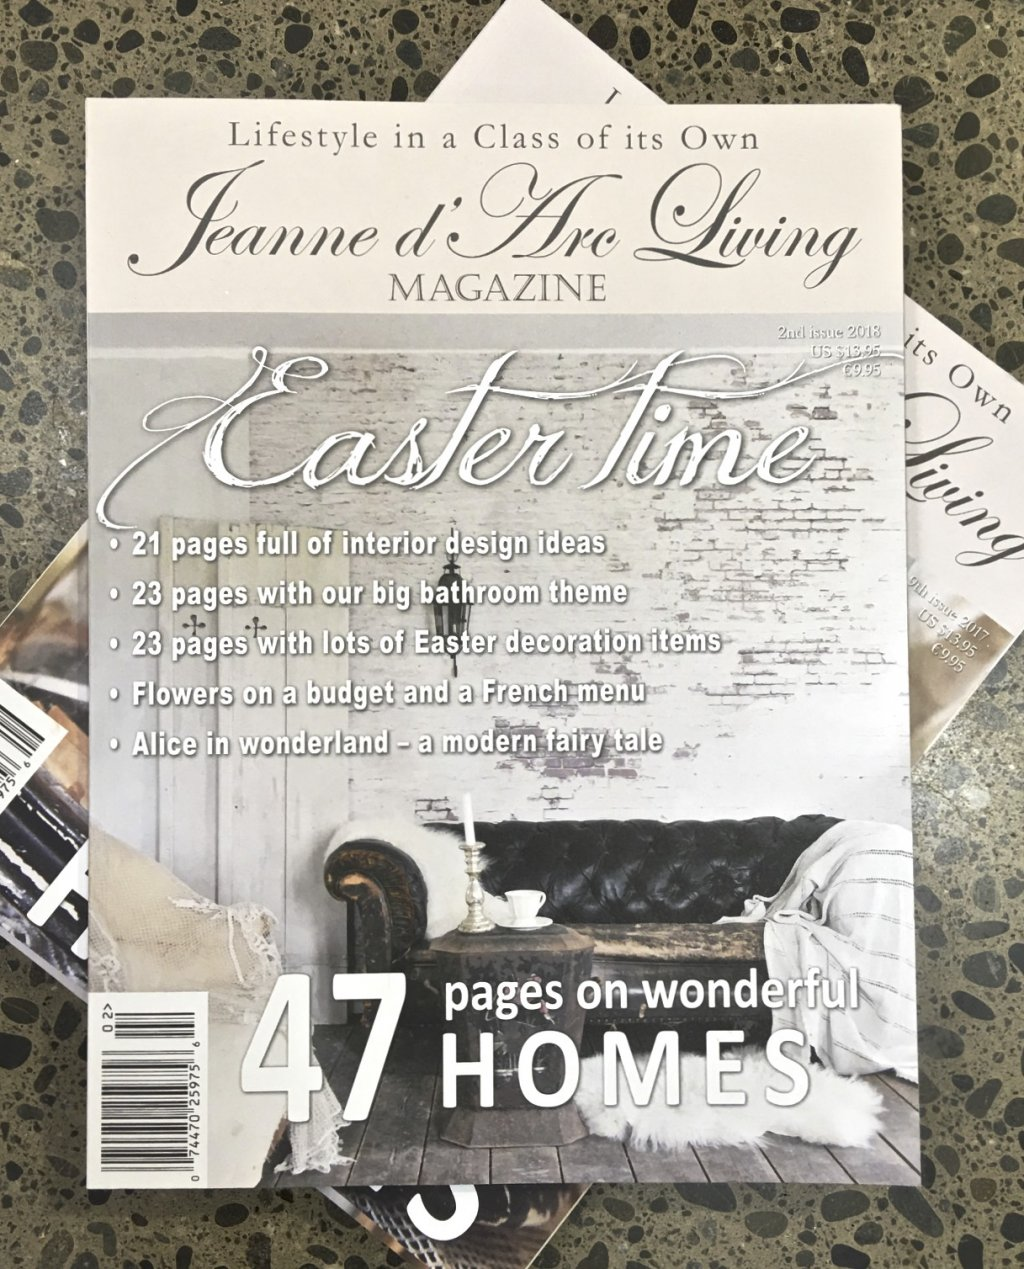 Jeanne d'Arc Living Magazine | Issue 2, February 2018